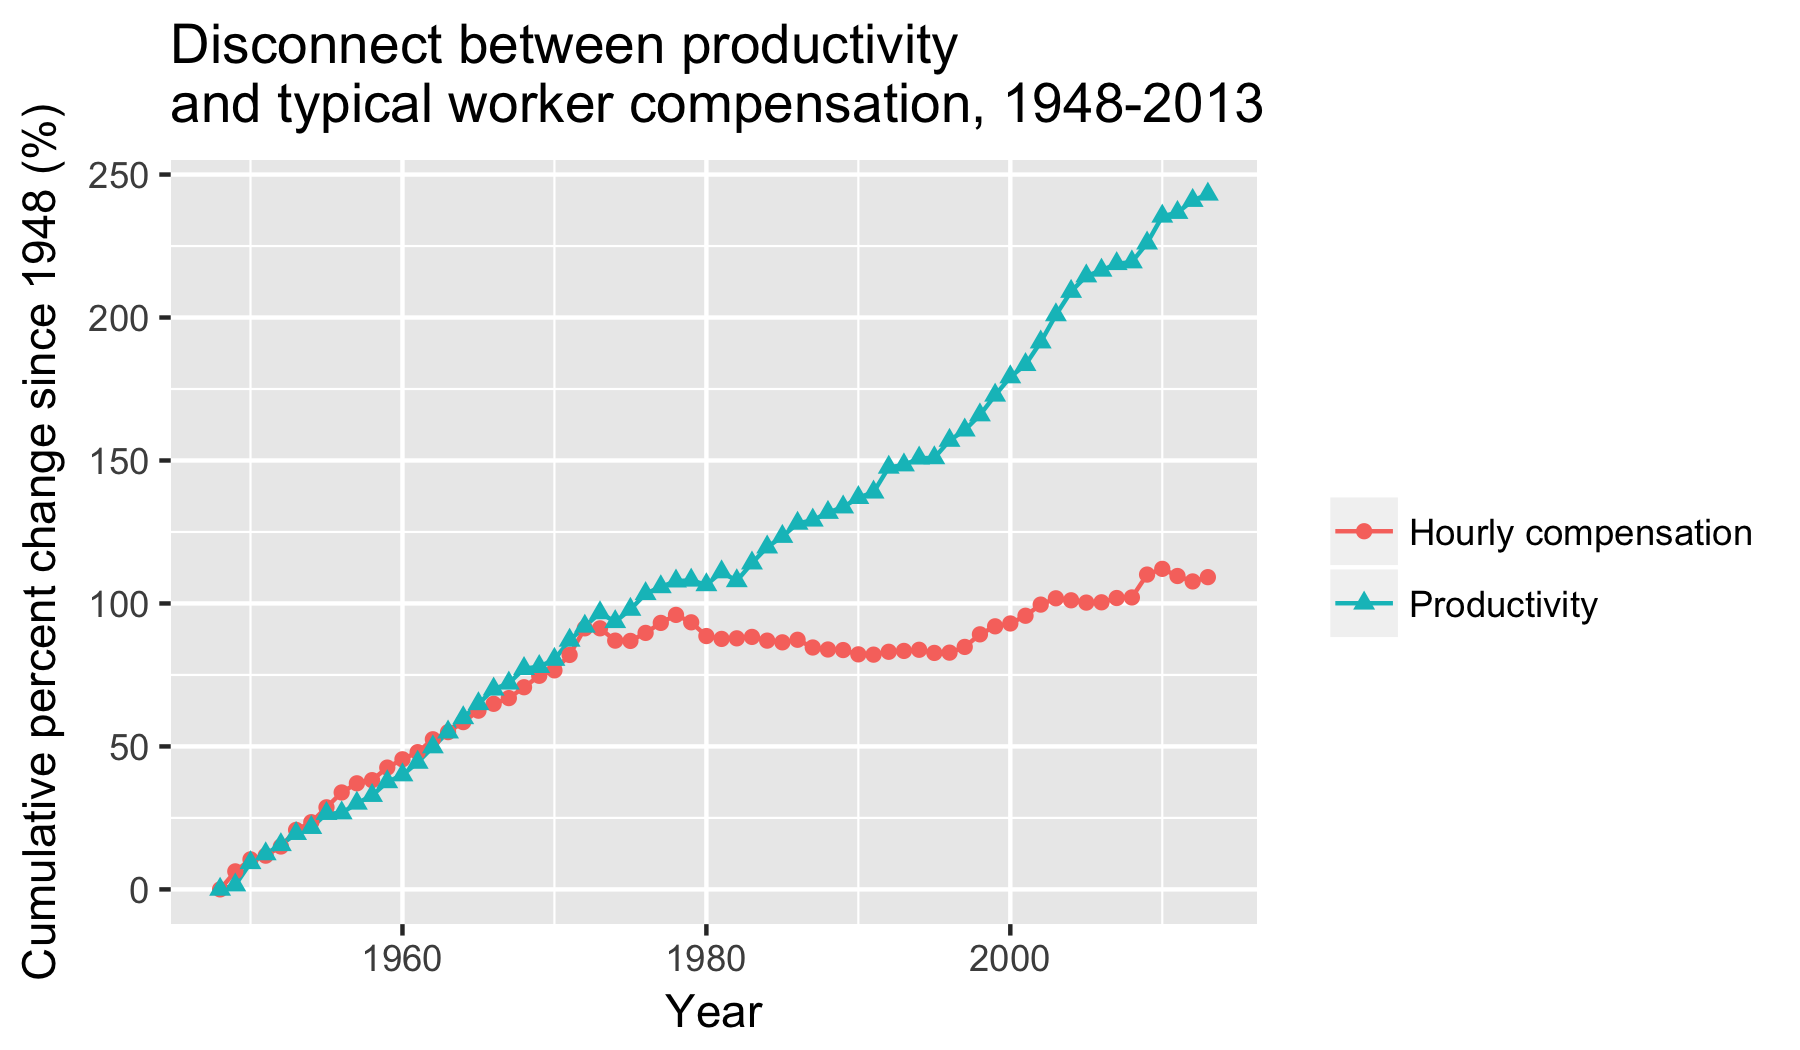 Graph showing disconnect between productivity and typical worker compensation (1948-2013)